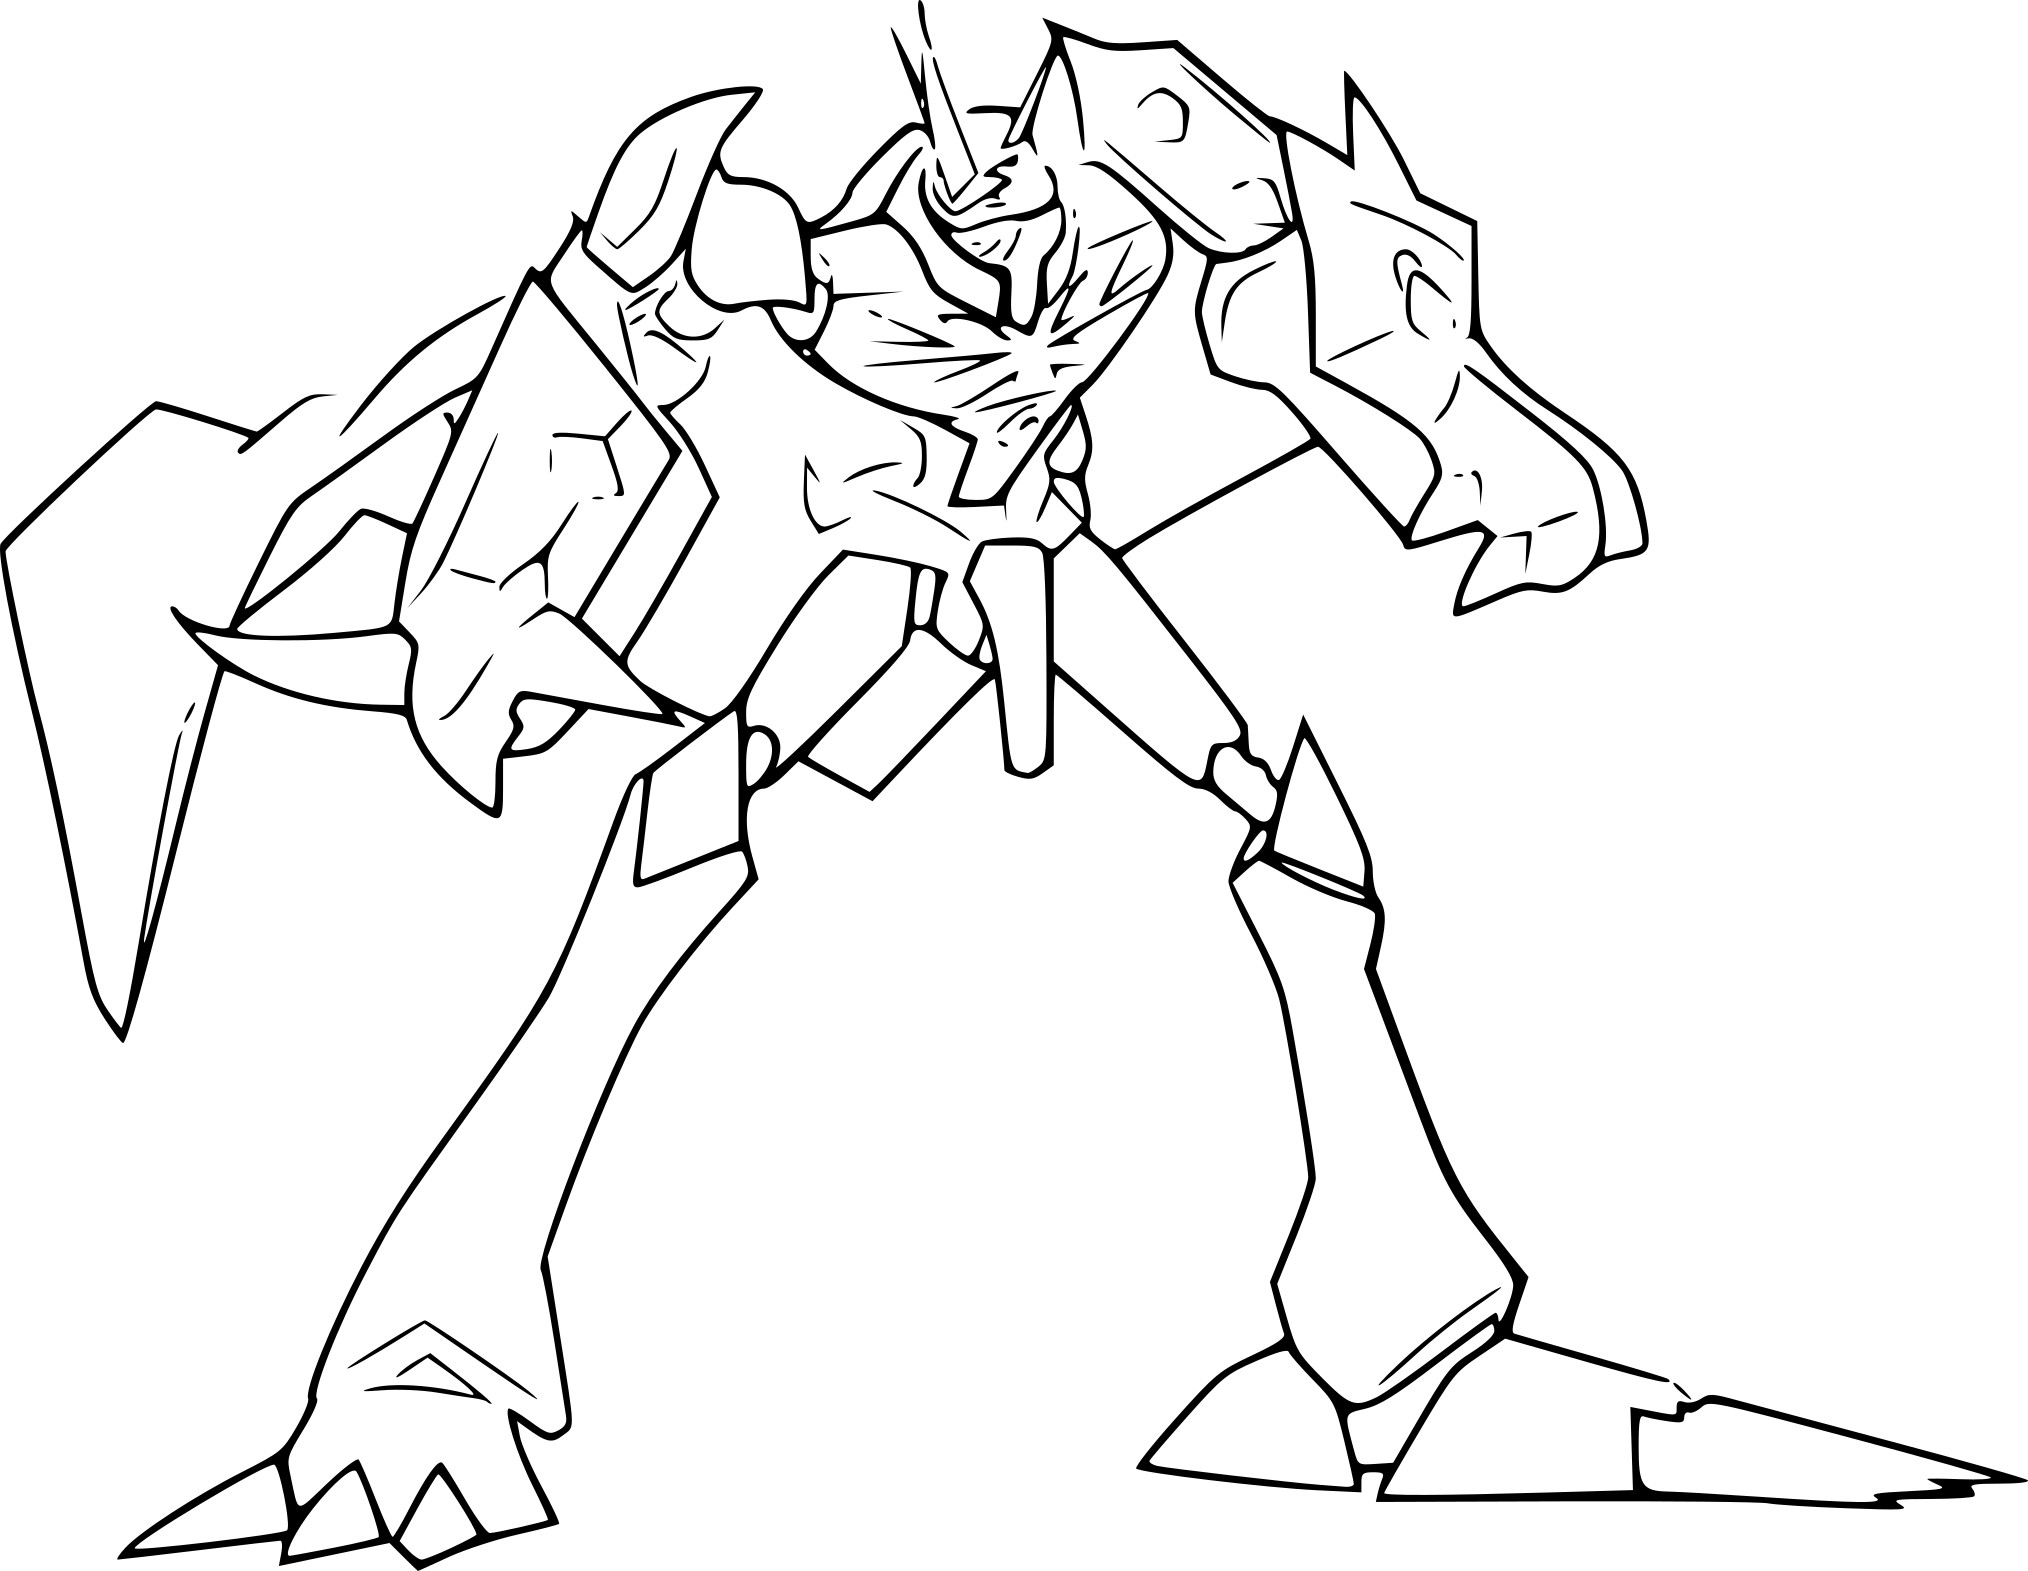 Coloriage Omnimon Digimon